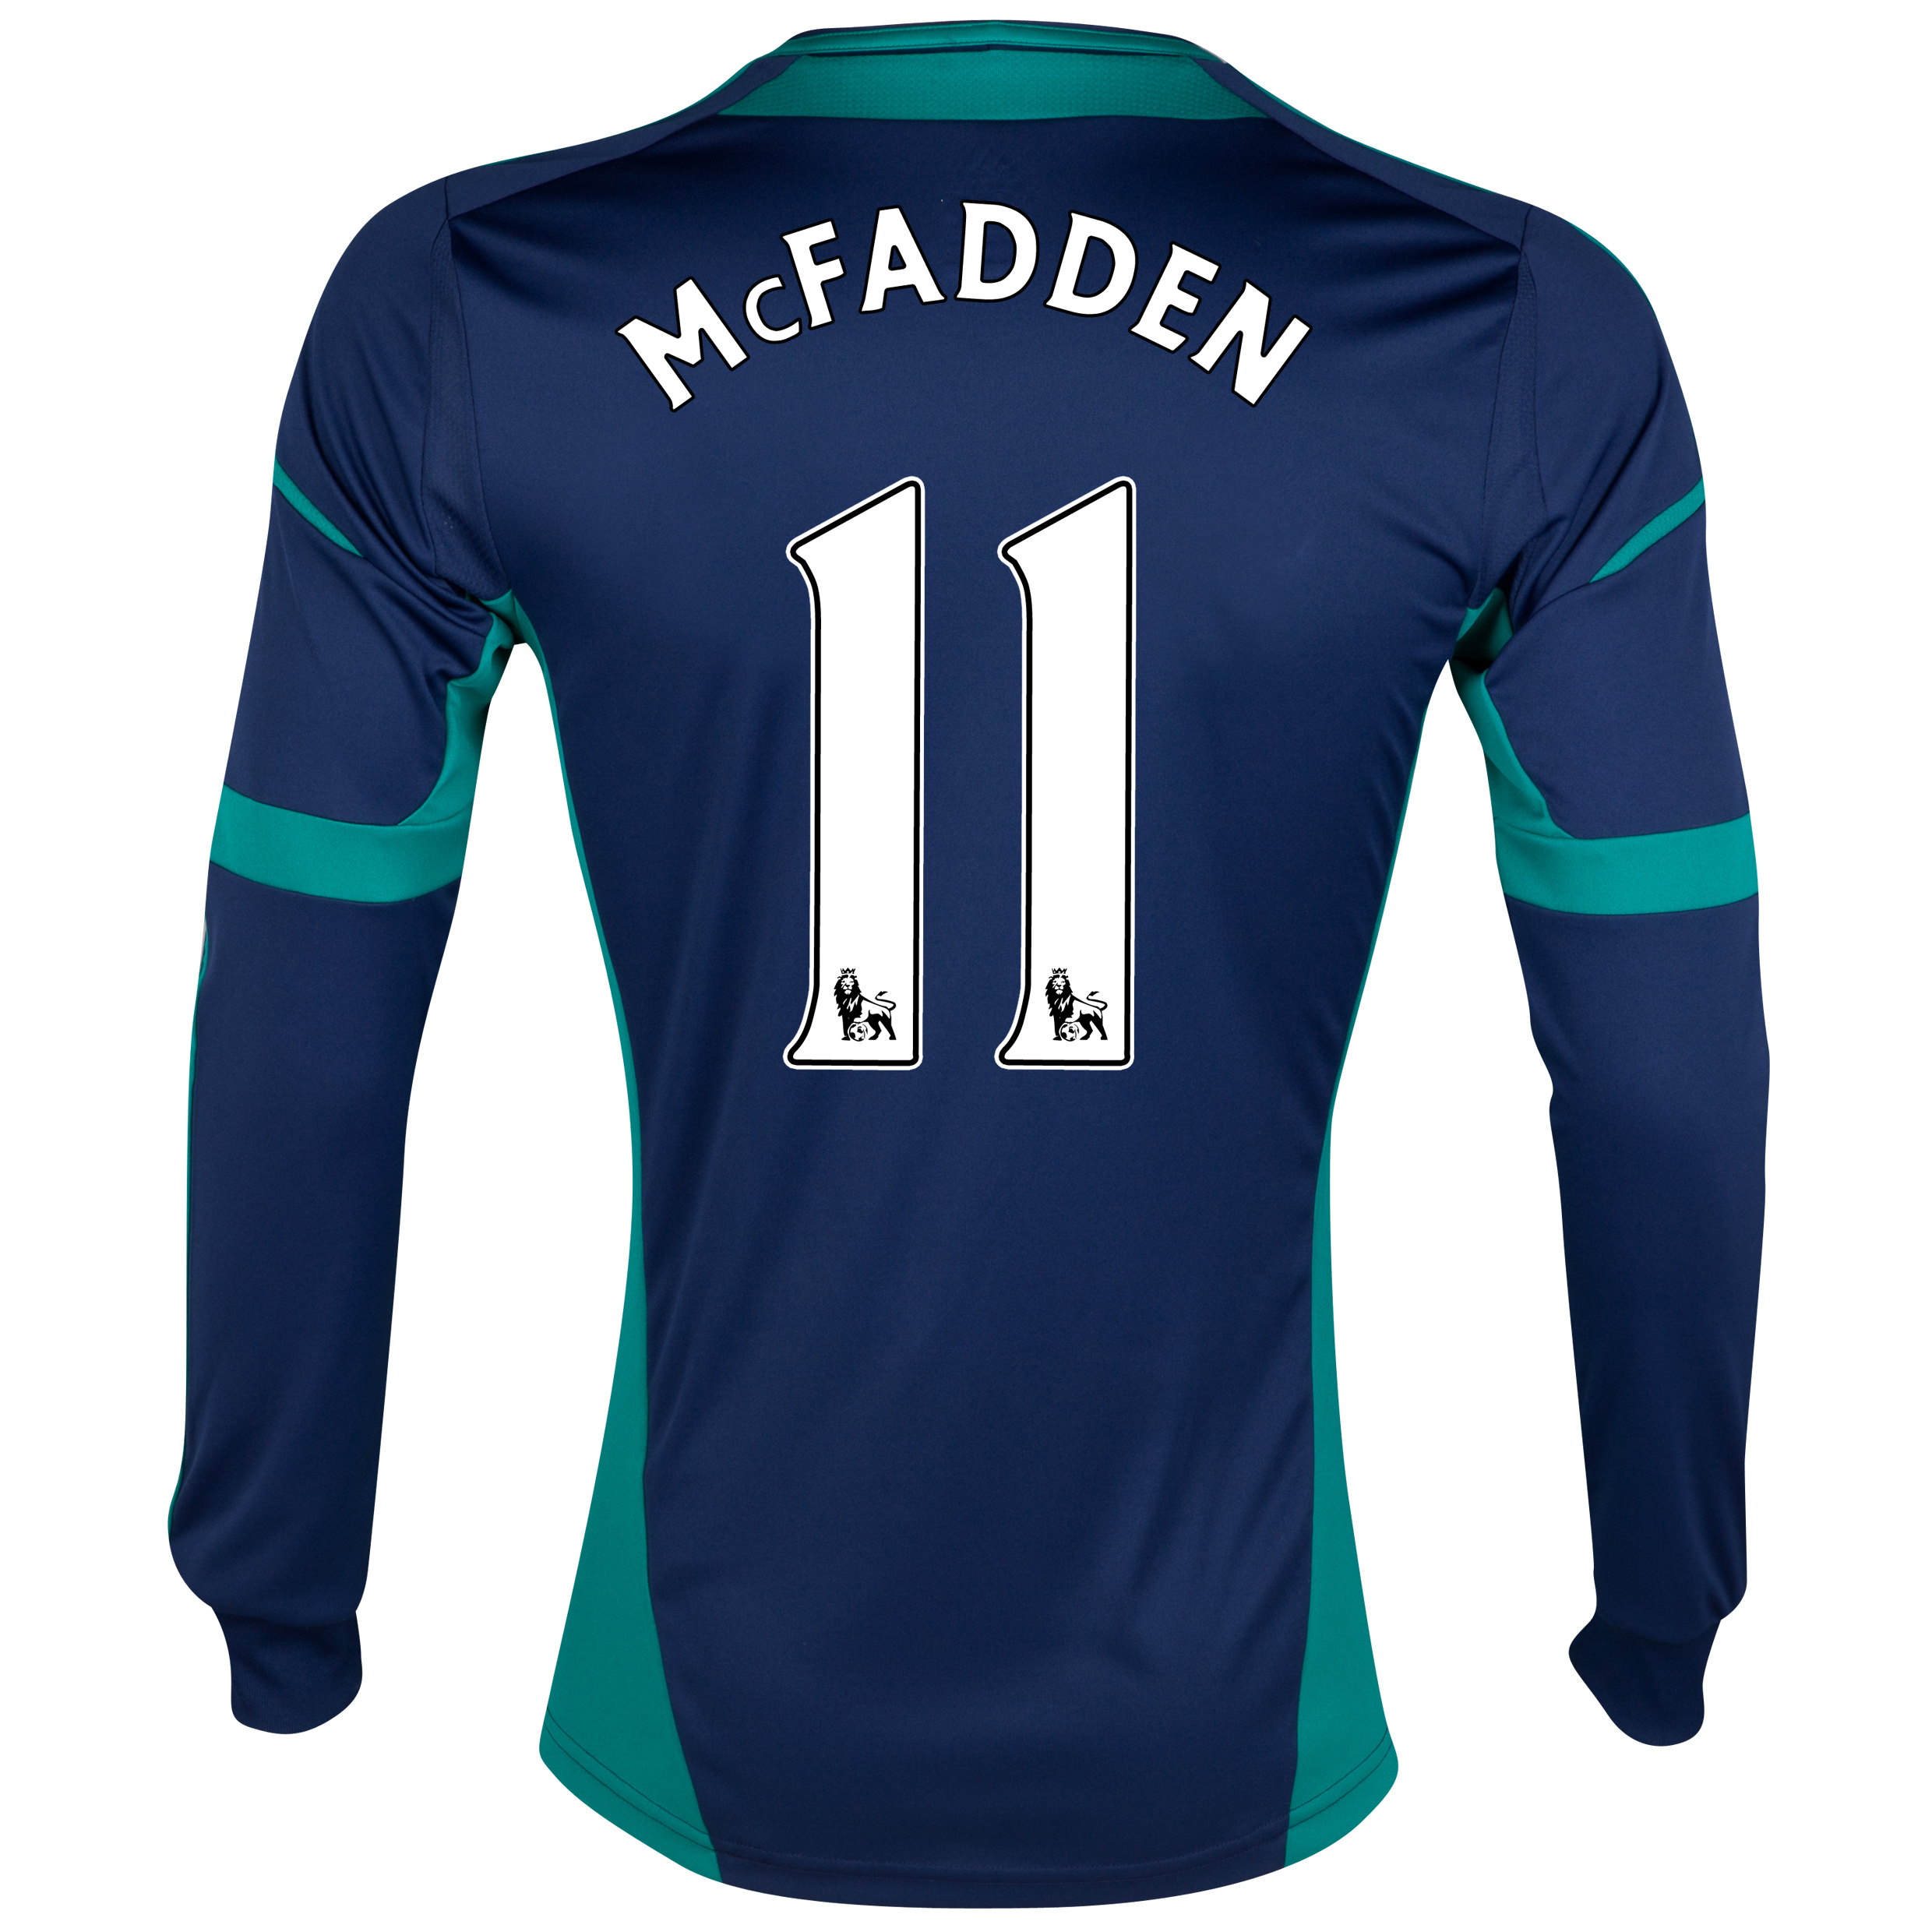 Sunderland Away Shirt 2012/13 - Long Sleeved - Junior with McFadden 11 printing